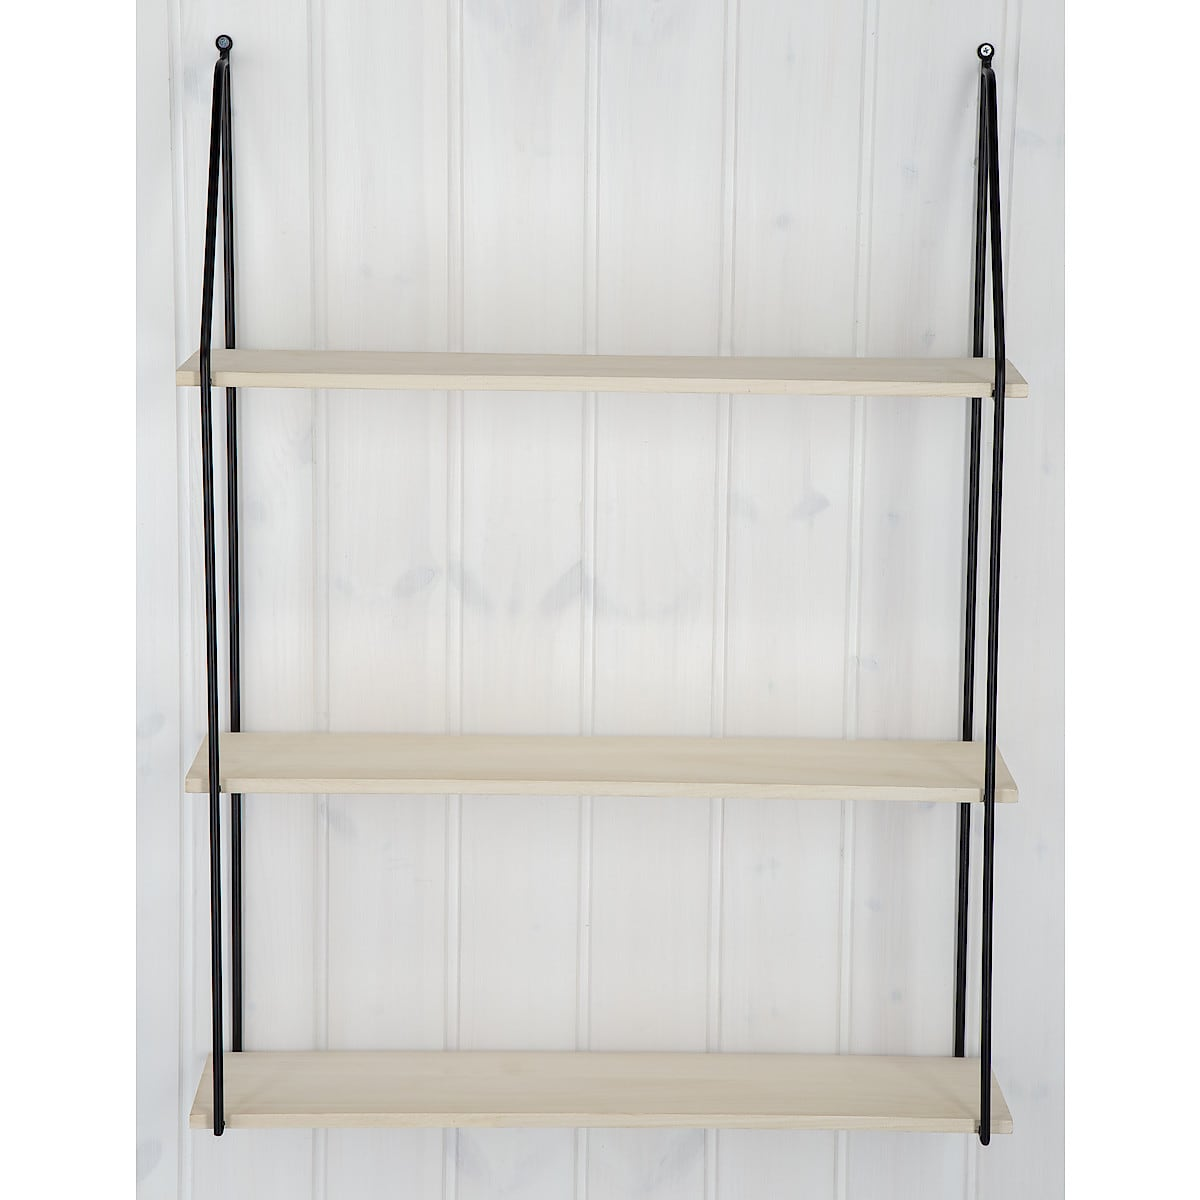 Wood/Metal Wall shelf